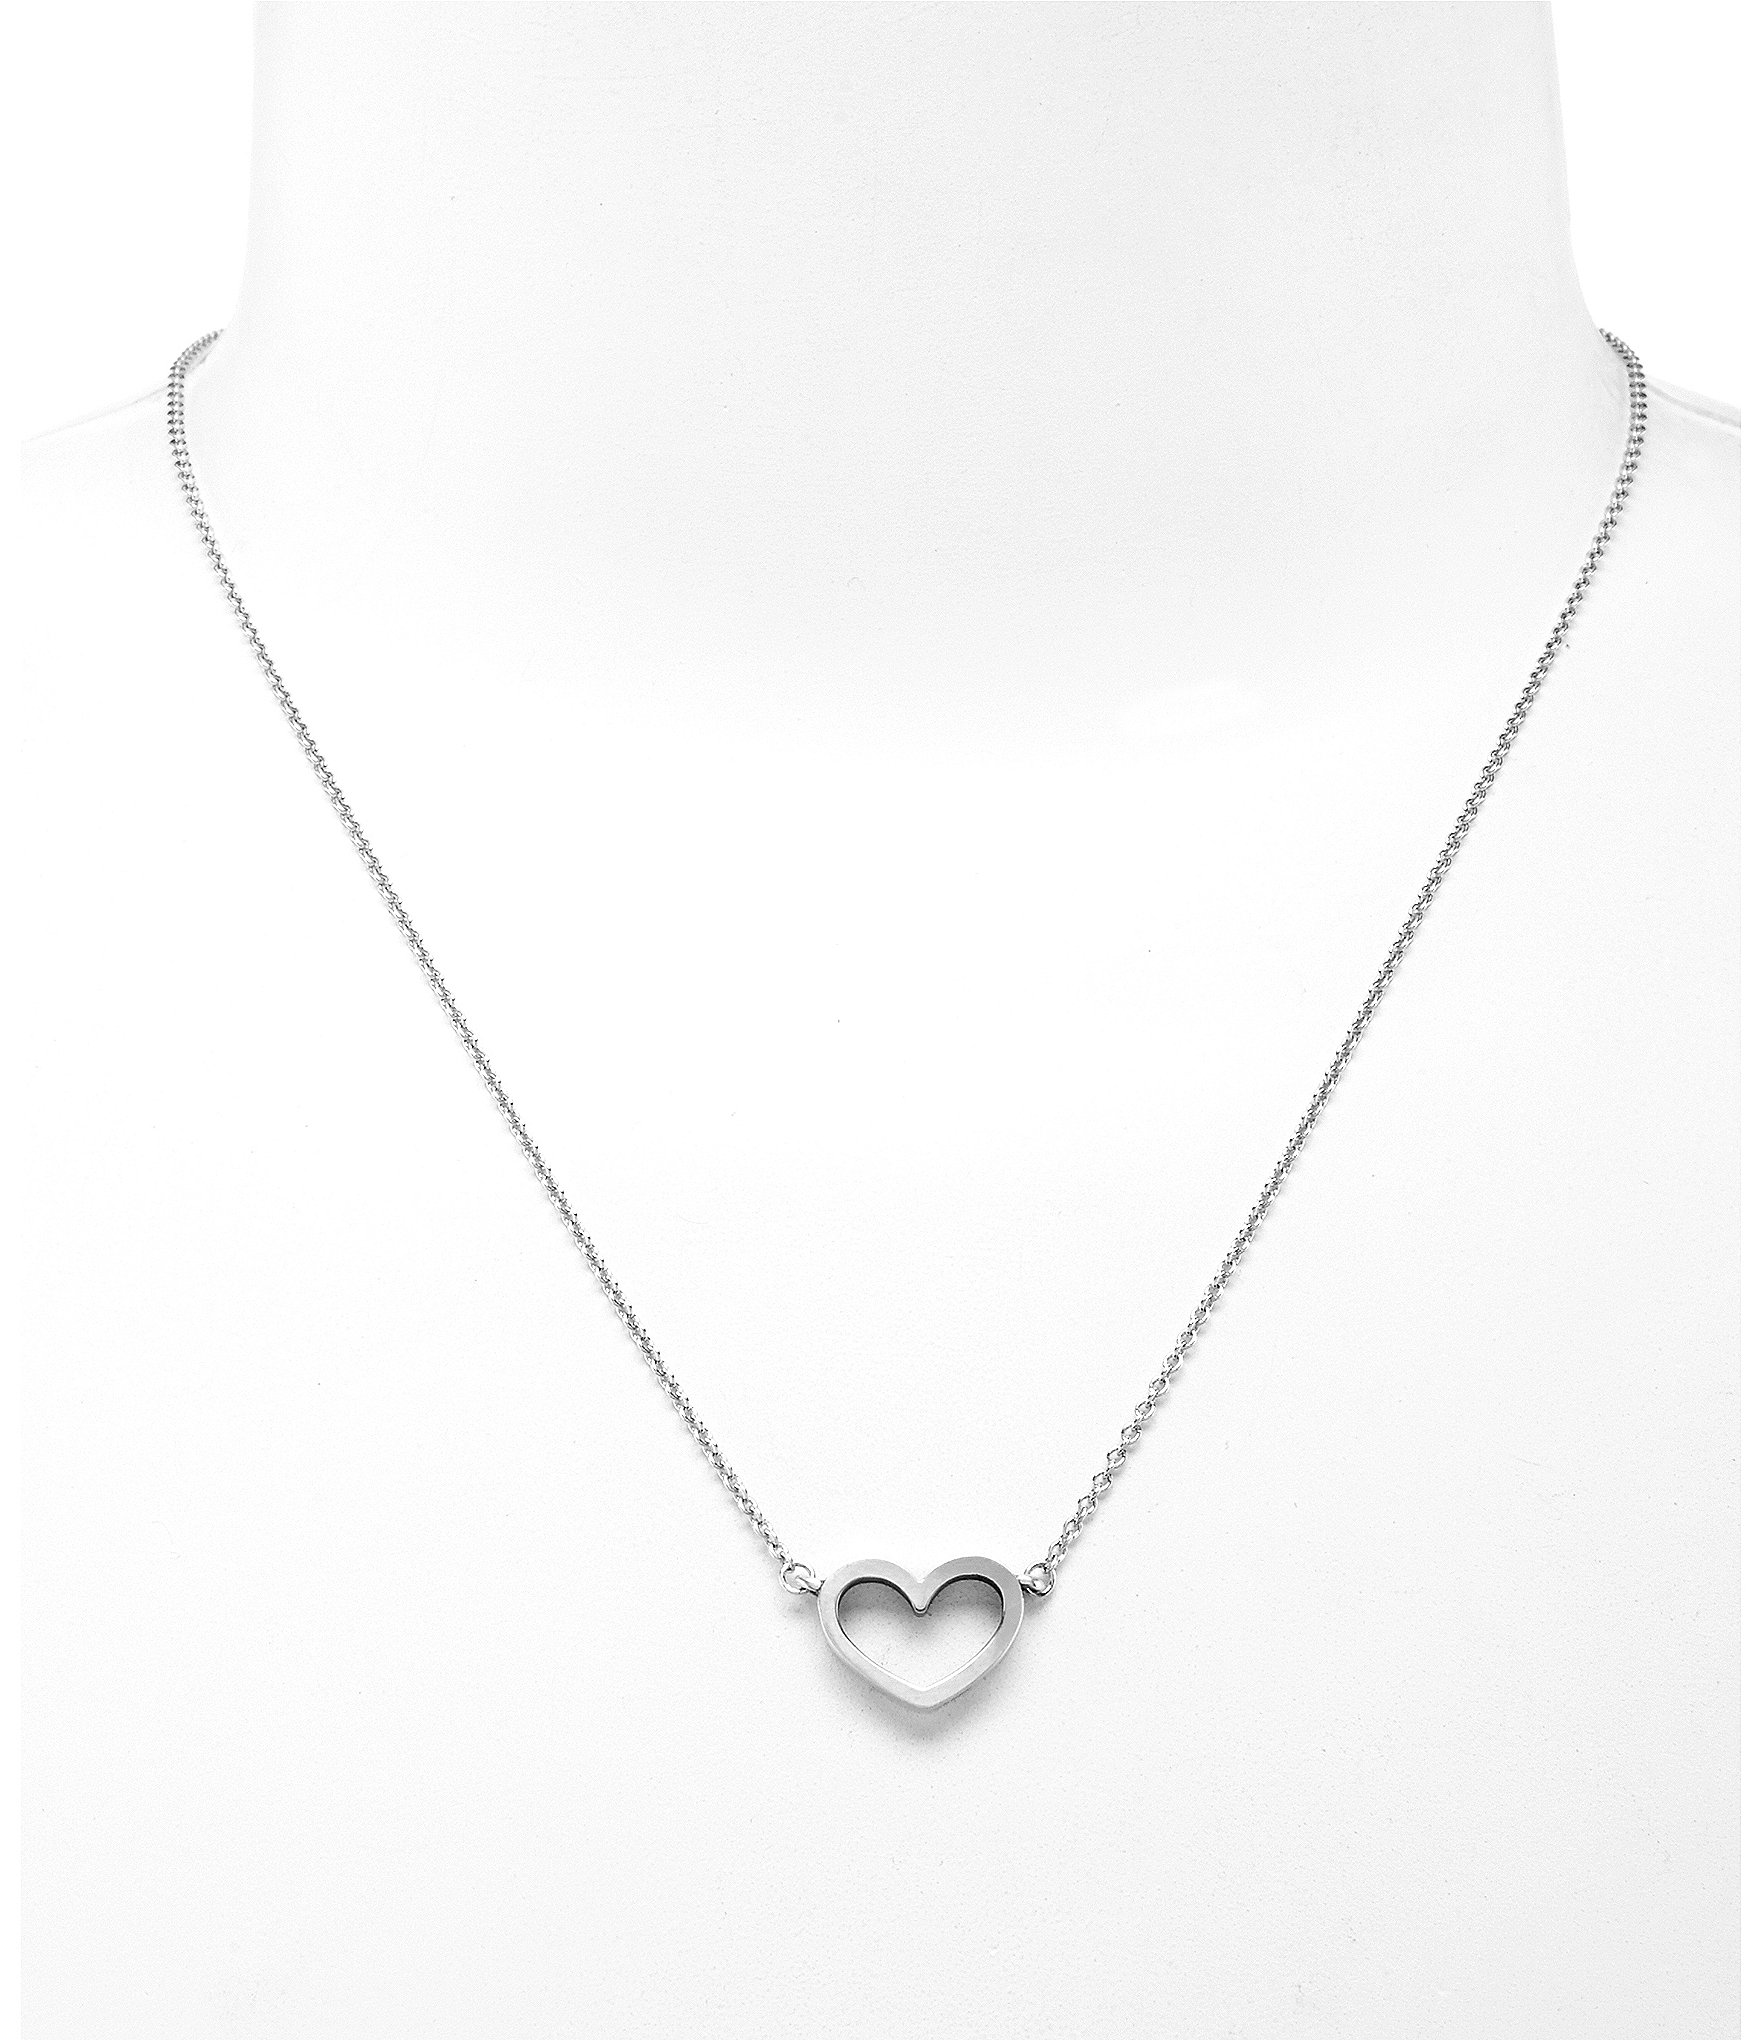 en folded heart main mini pdpzoom us sku necklace fossil aemresponsive sterling silver products